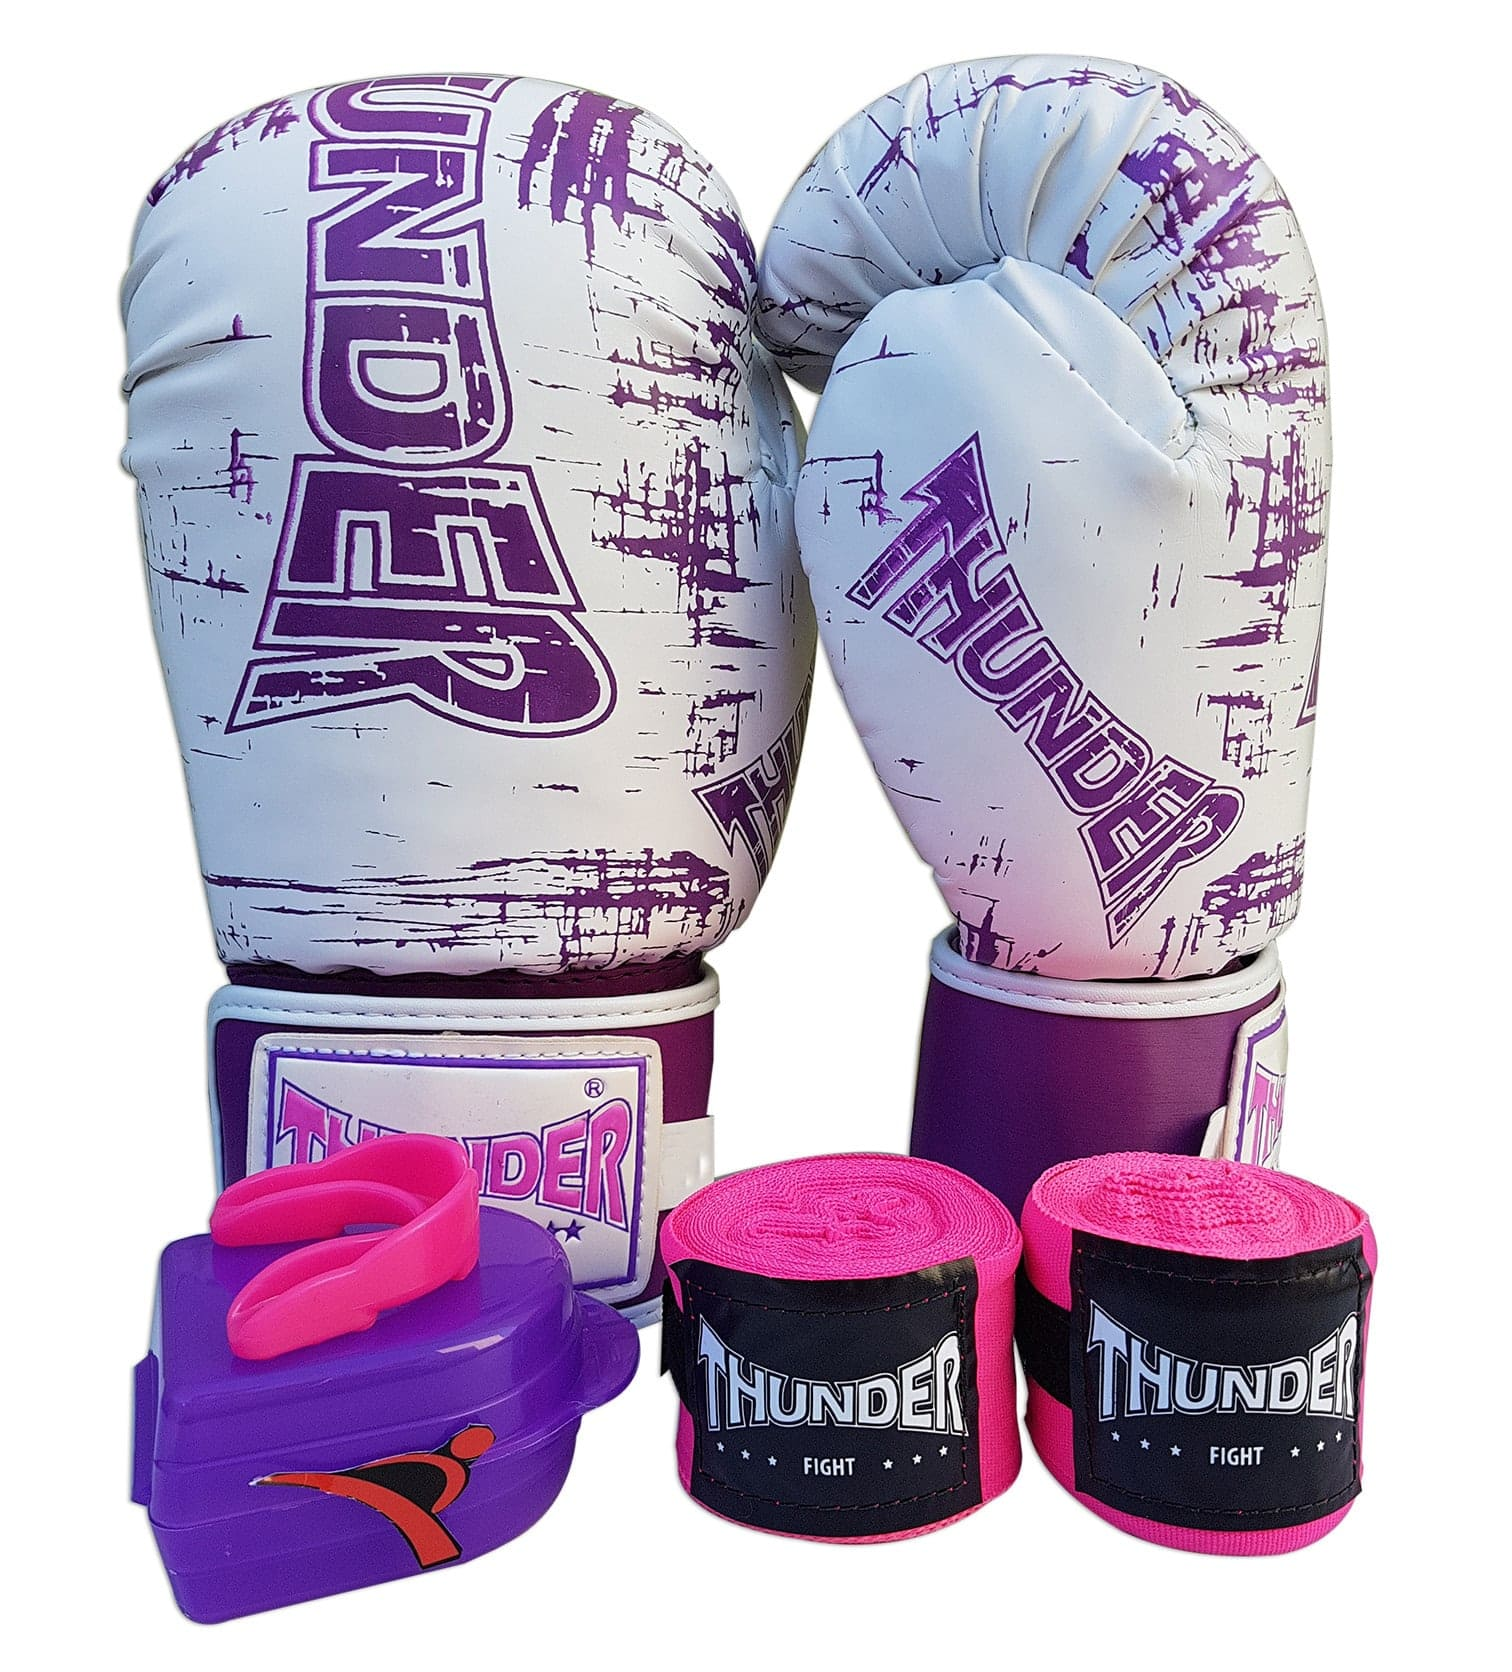 Kit de Boxe / Muay Thai Feminino 12oz - Branco Riscado Lilás  - Thunder Fight   - PRALUTA SHOP